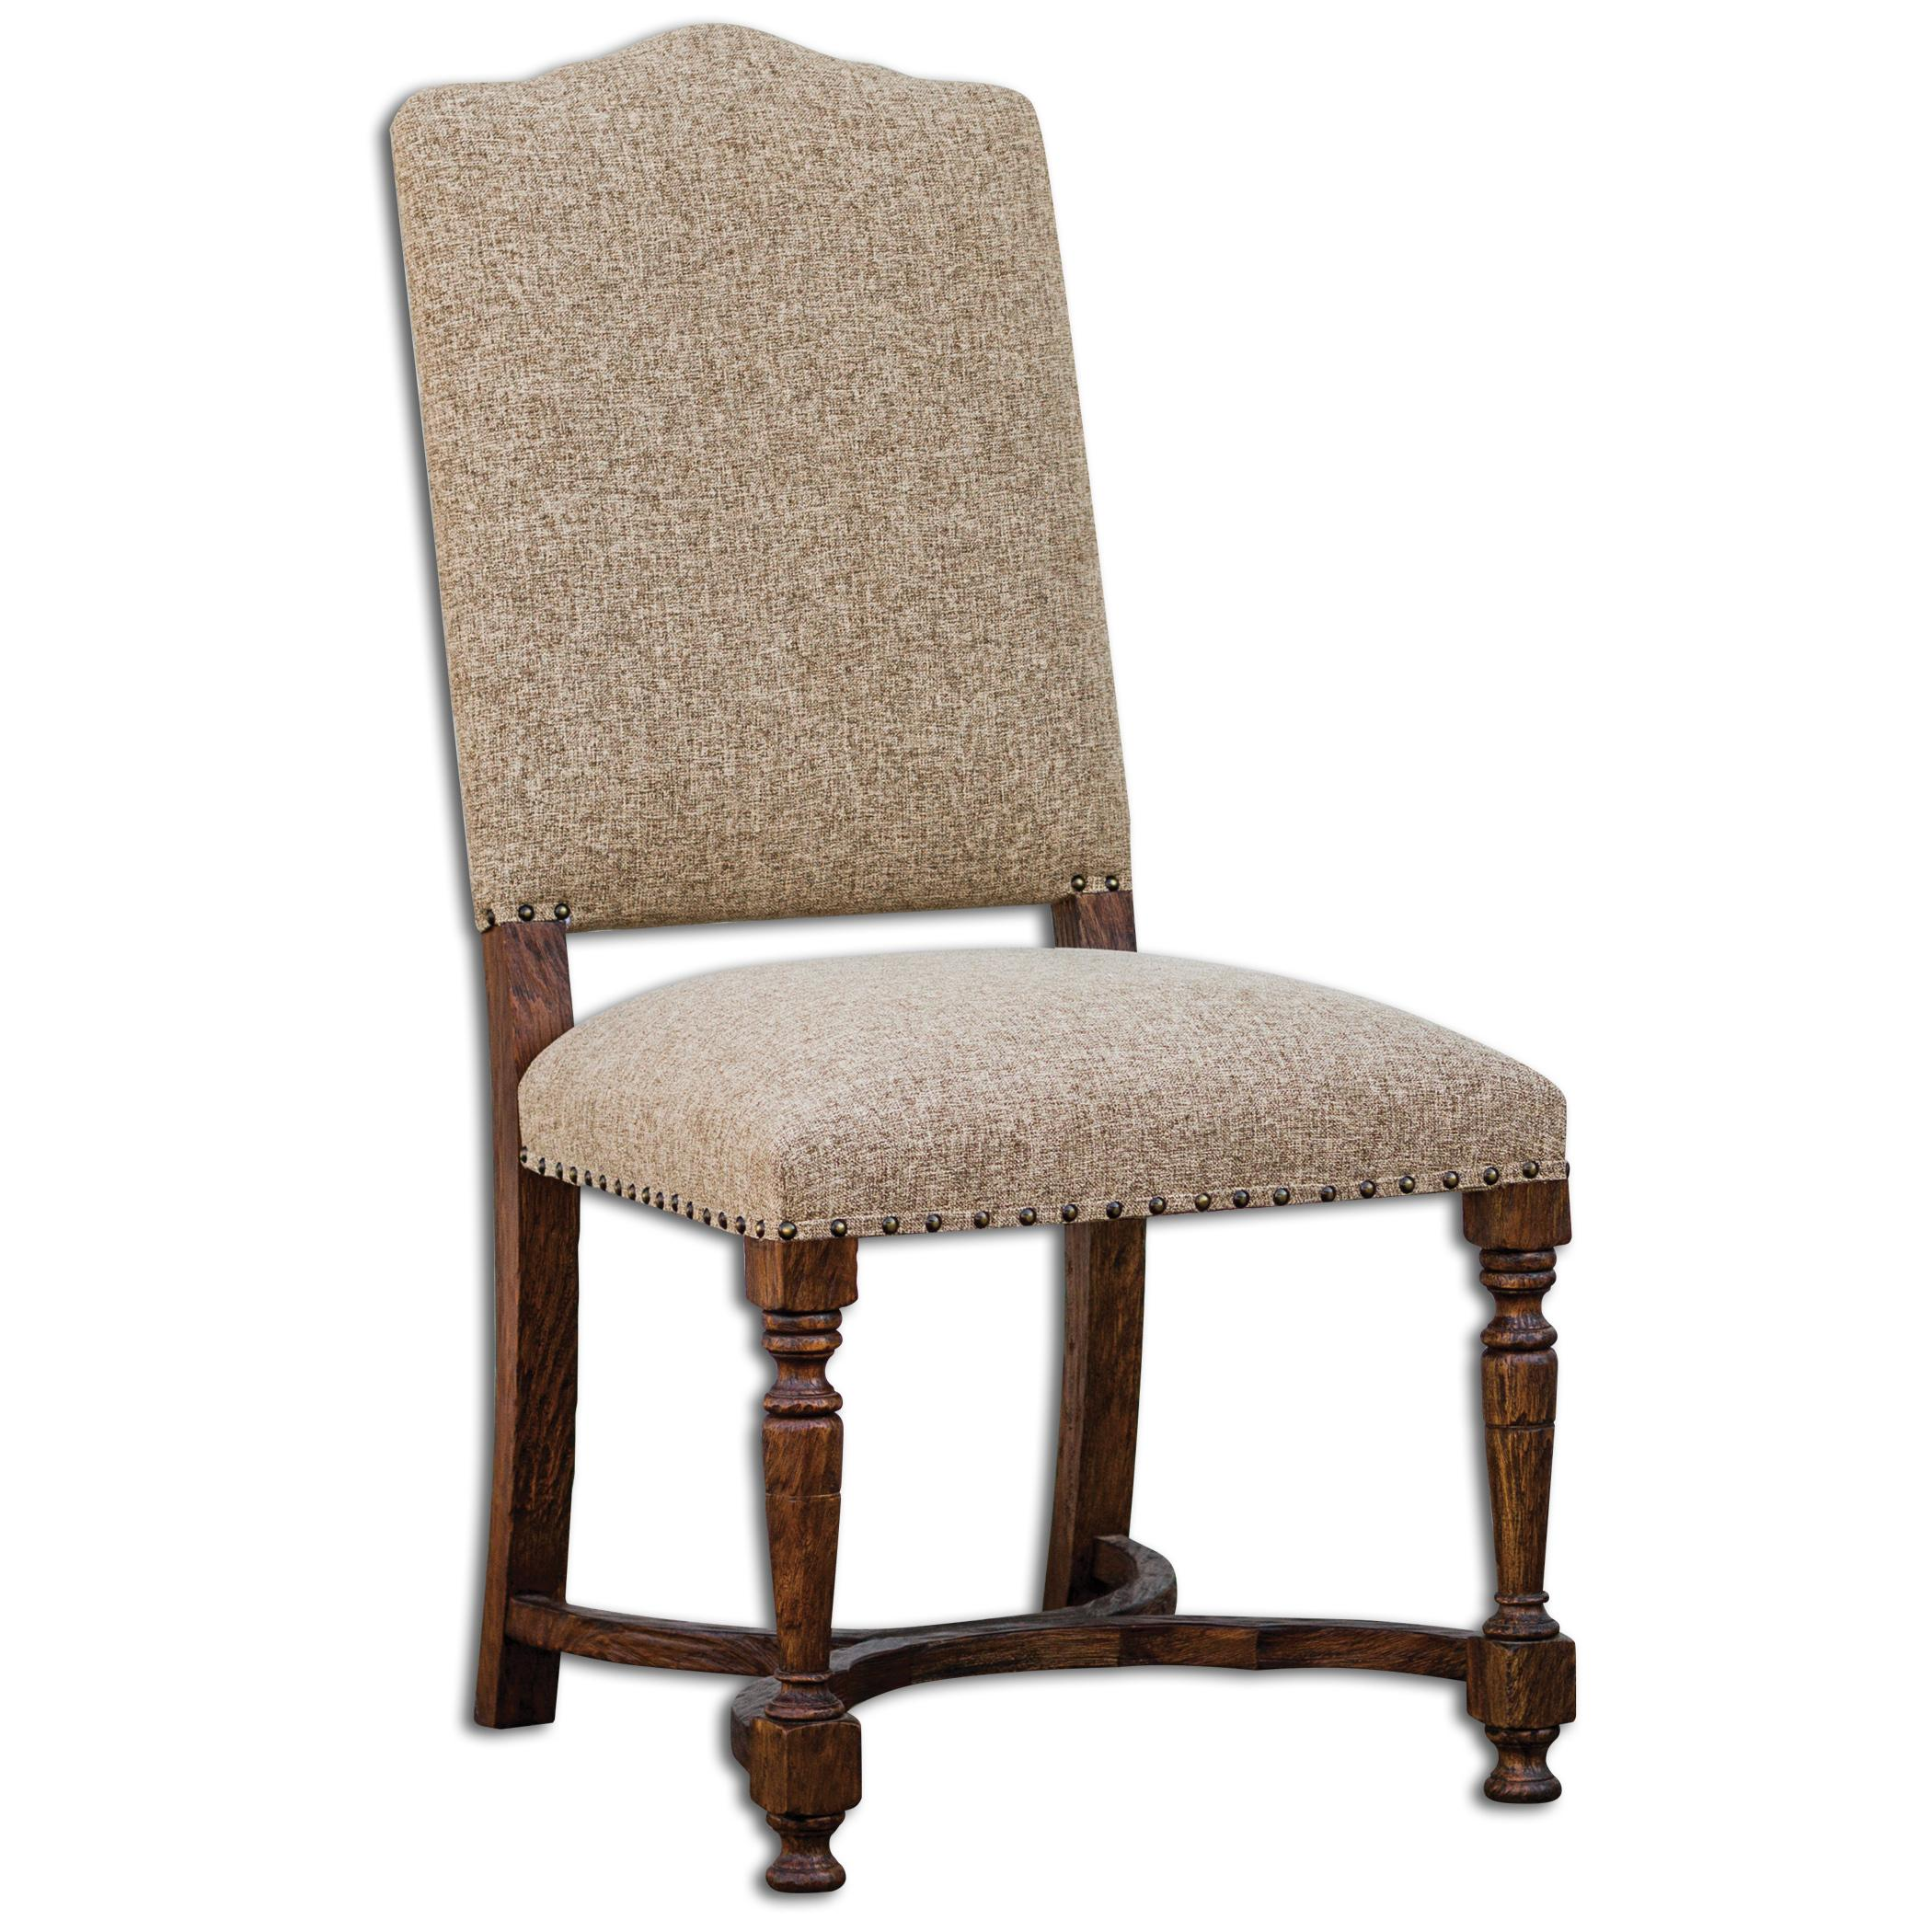 Uttermost Accent Furniture Pierson Textured Linen Accent Chai - Item Number: 23623